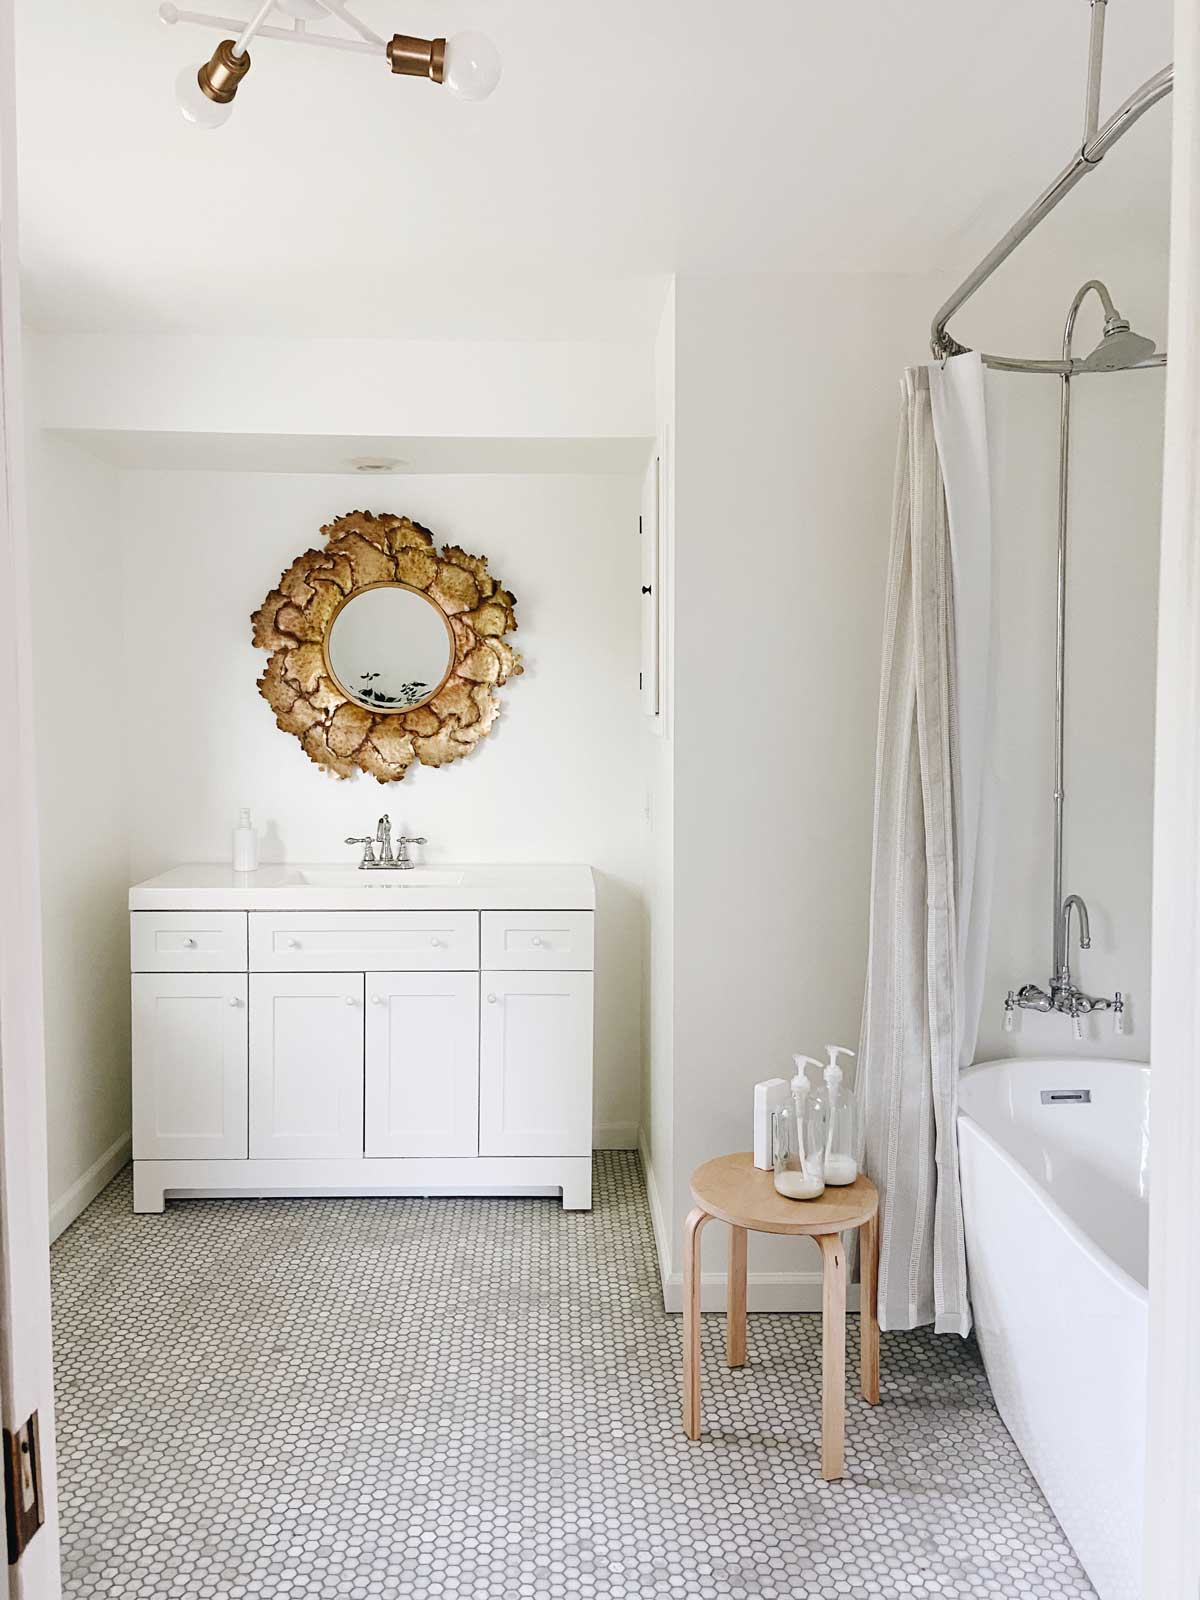 A MASTER BATHROOM: BEFORE & AFTER